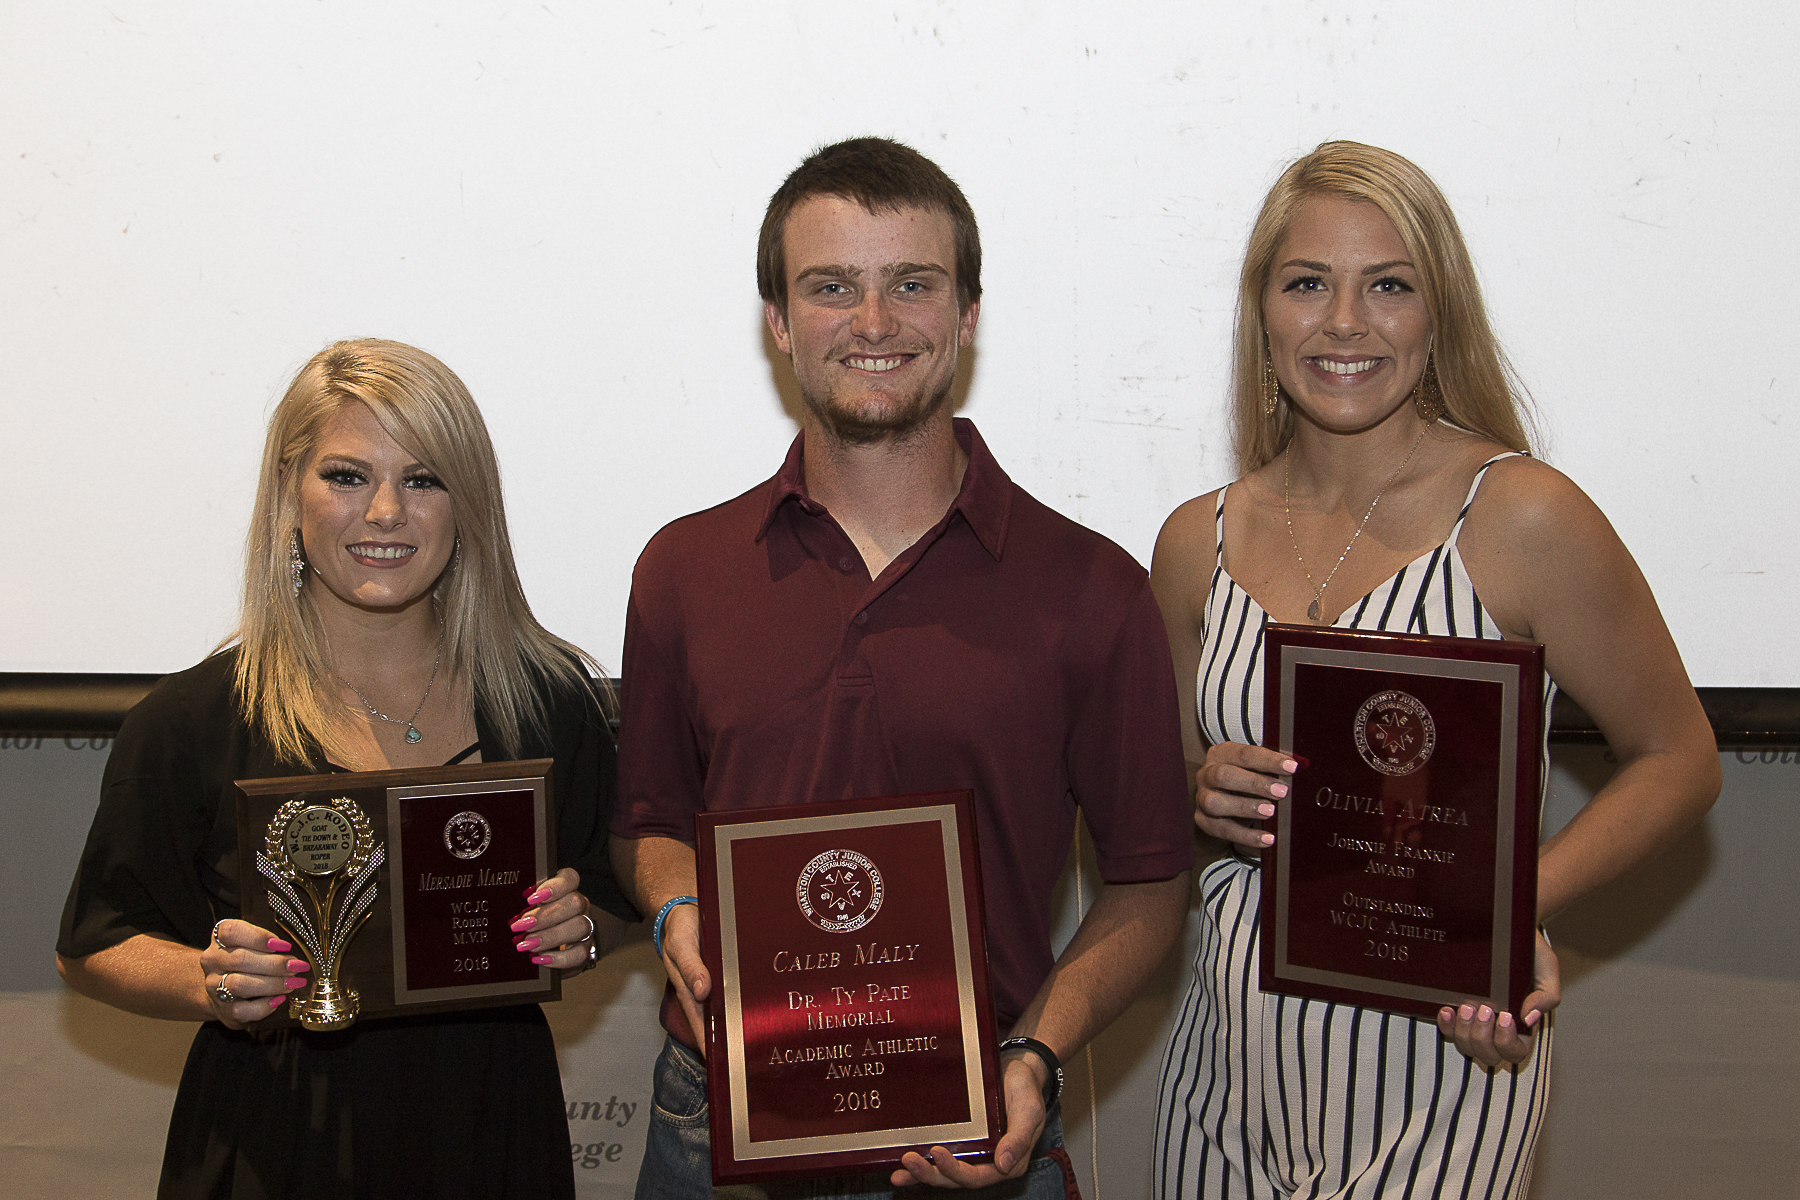 ATHLETIC ACHIEVEMENT WCJC recognizes outstanding student athletes at annual banquet